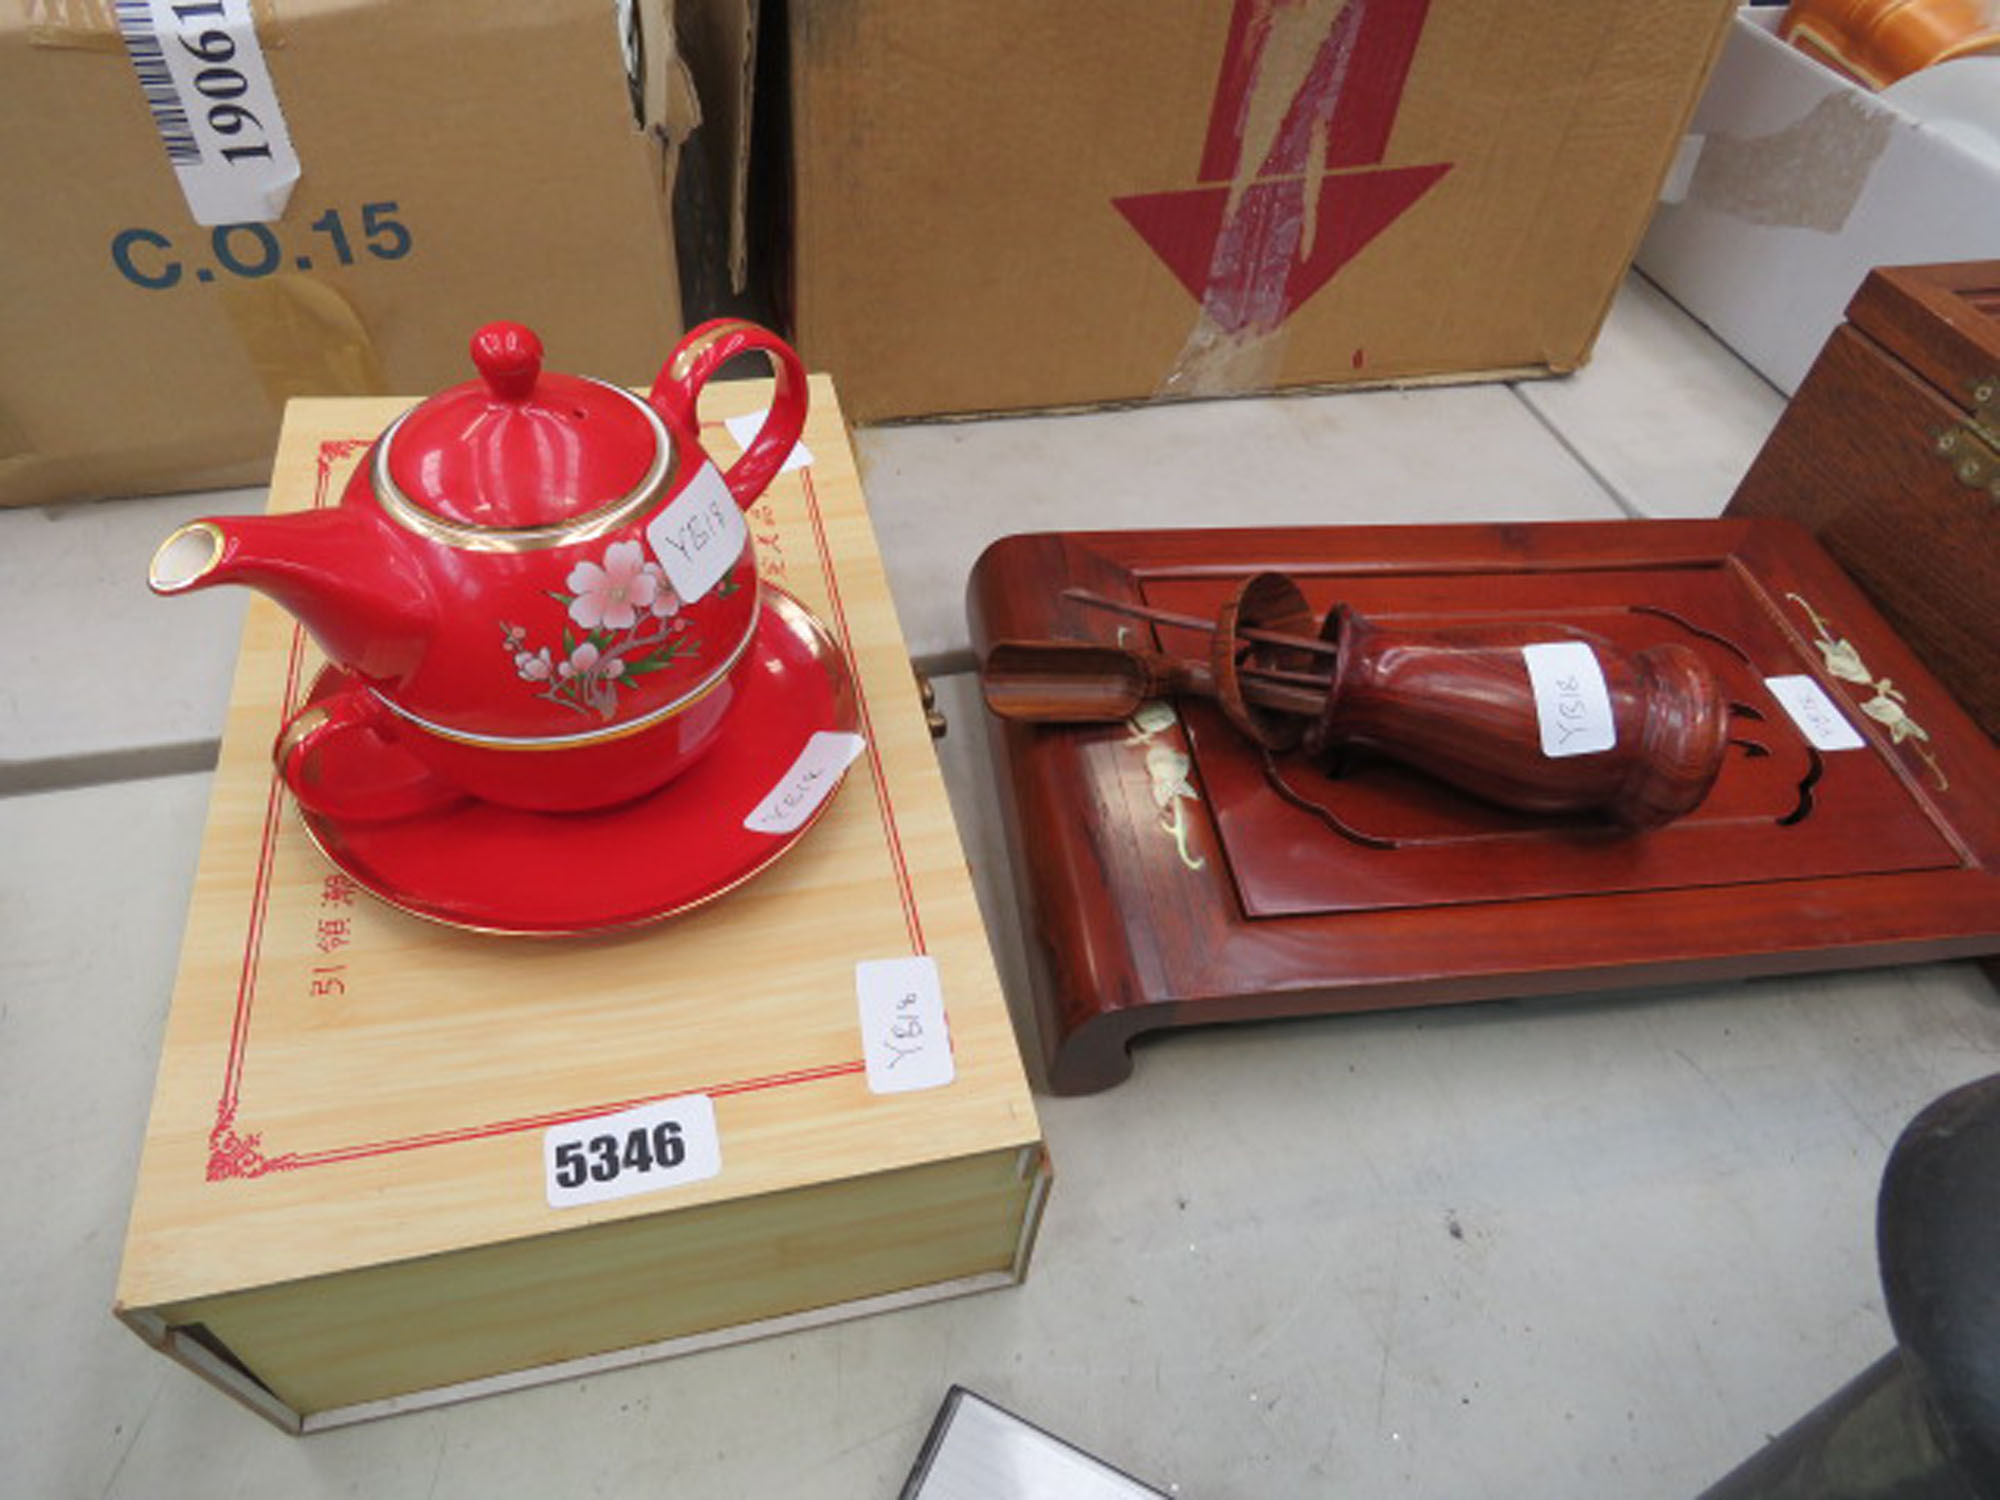 Modern Oriental part tea service plus a wooden serving tray and utensils